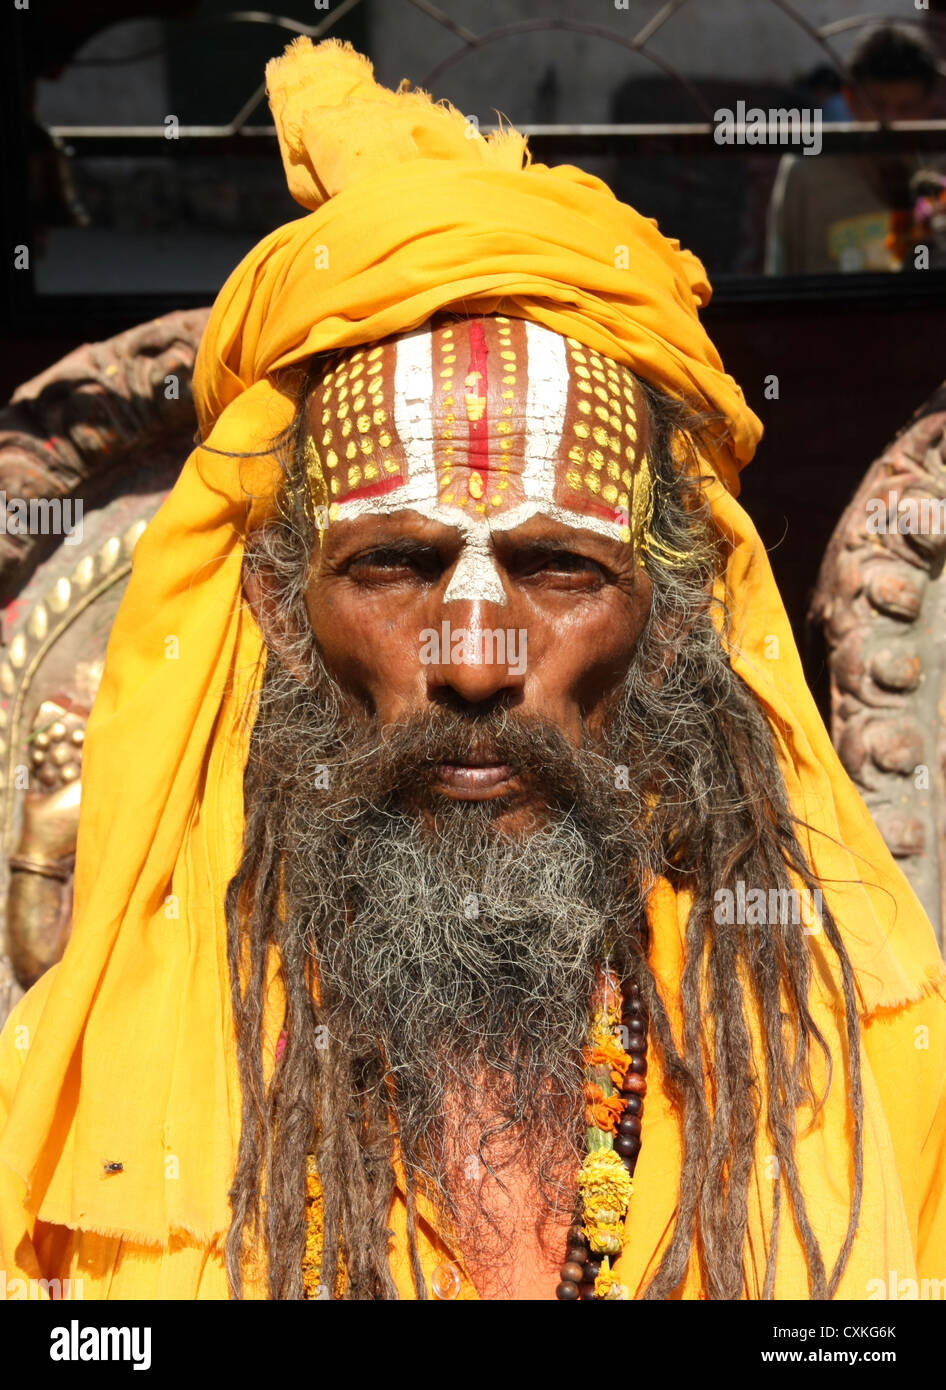 Hindu sadu holy man outside temple in Kathmandu, Nepal - Stock Image